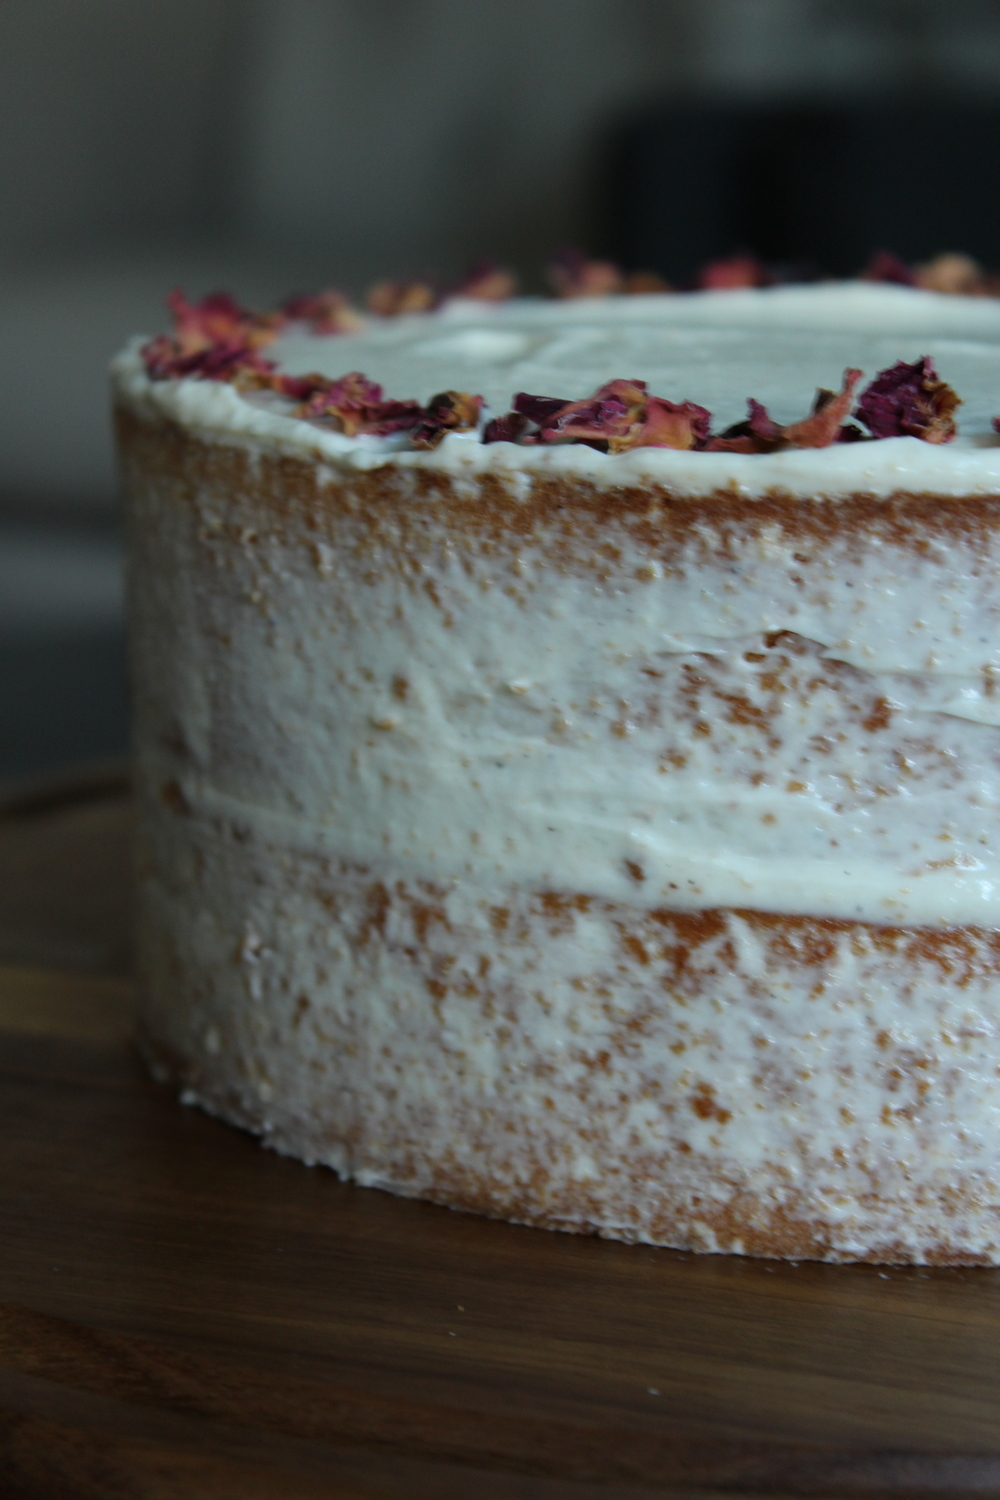 side view: tahini honey cake, cardamom goat cheese frosting, rose petals